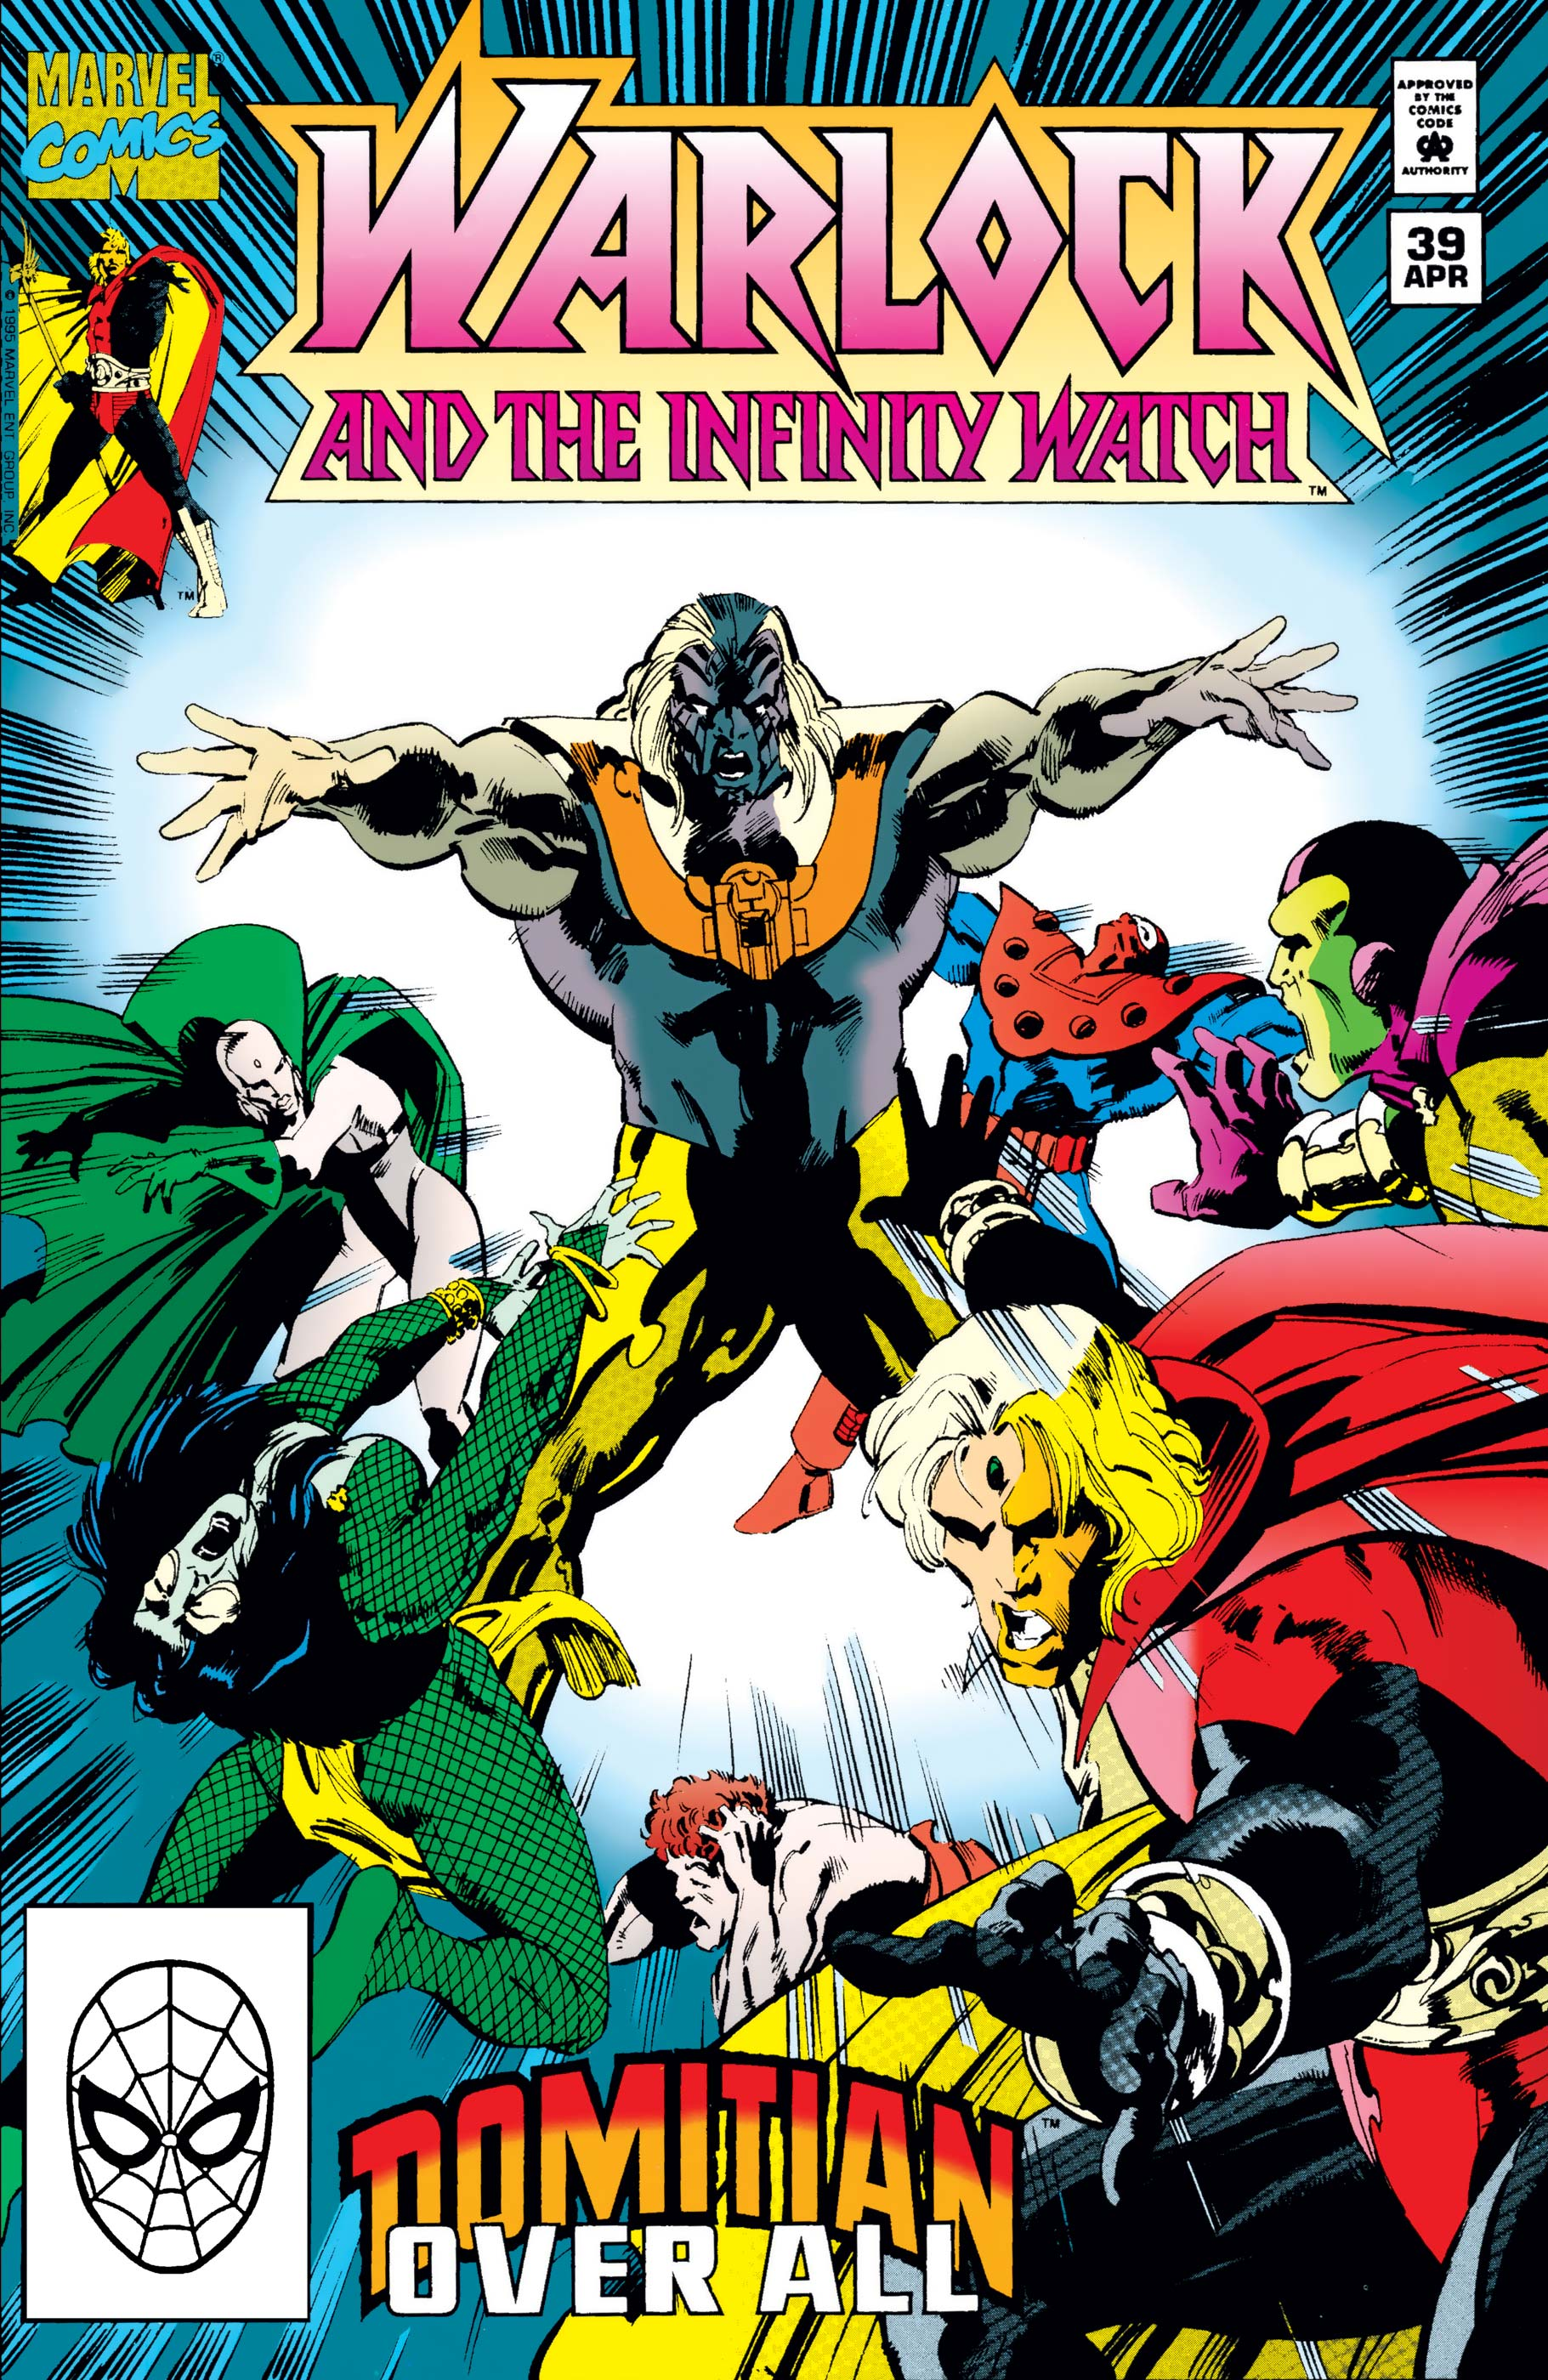 Warlock and the Infinity Watch (1992) #39